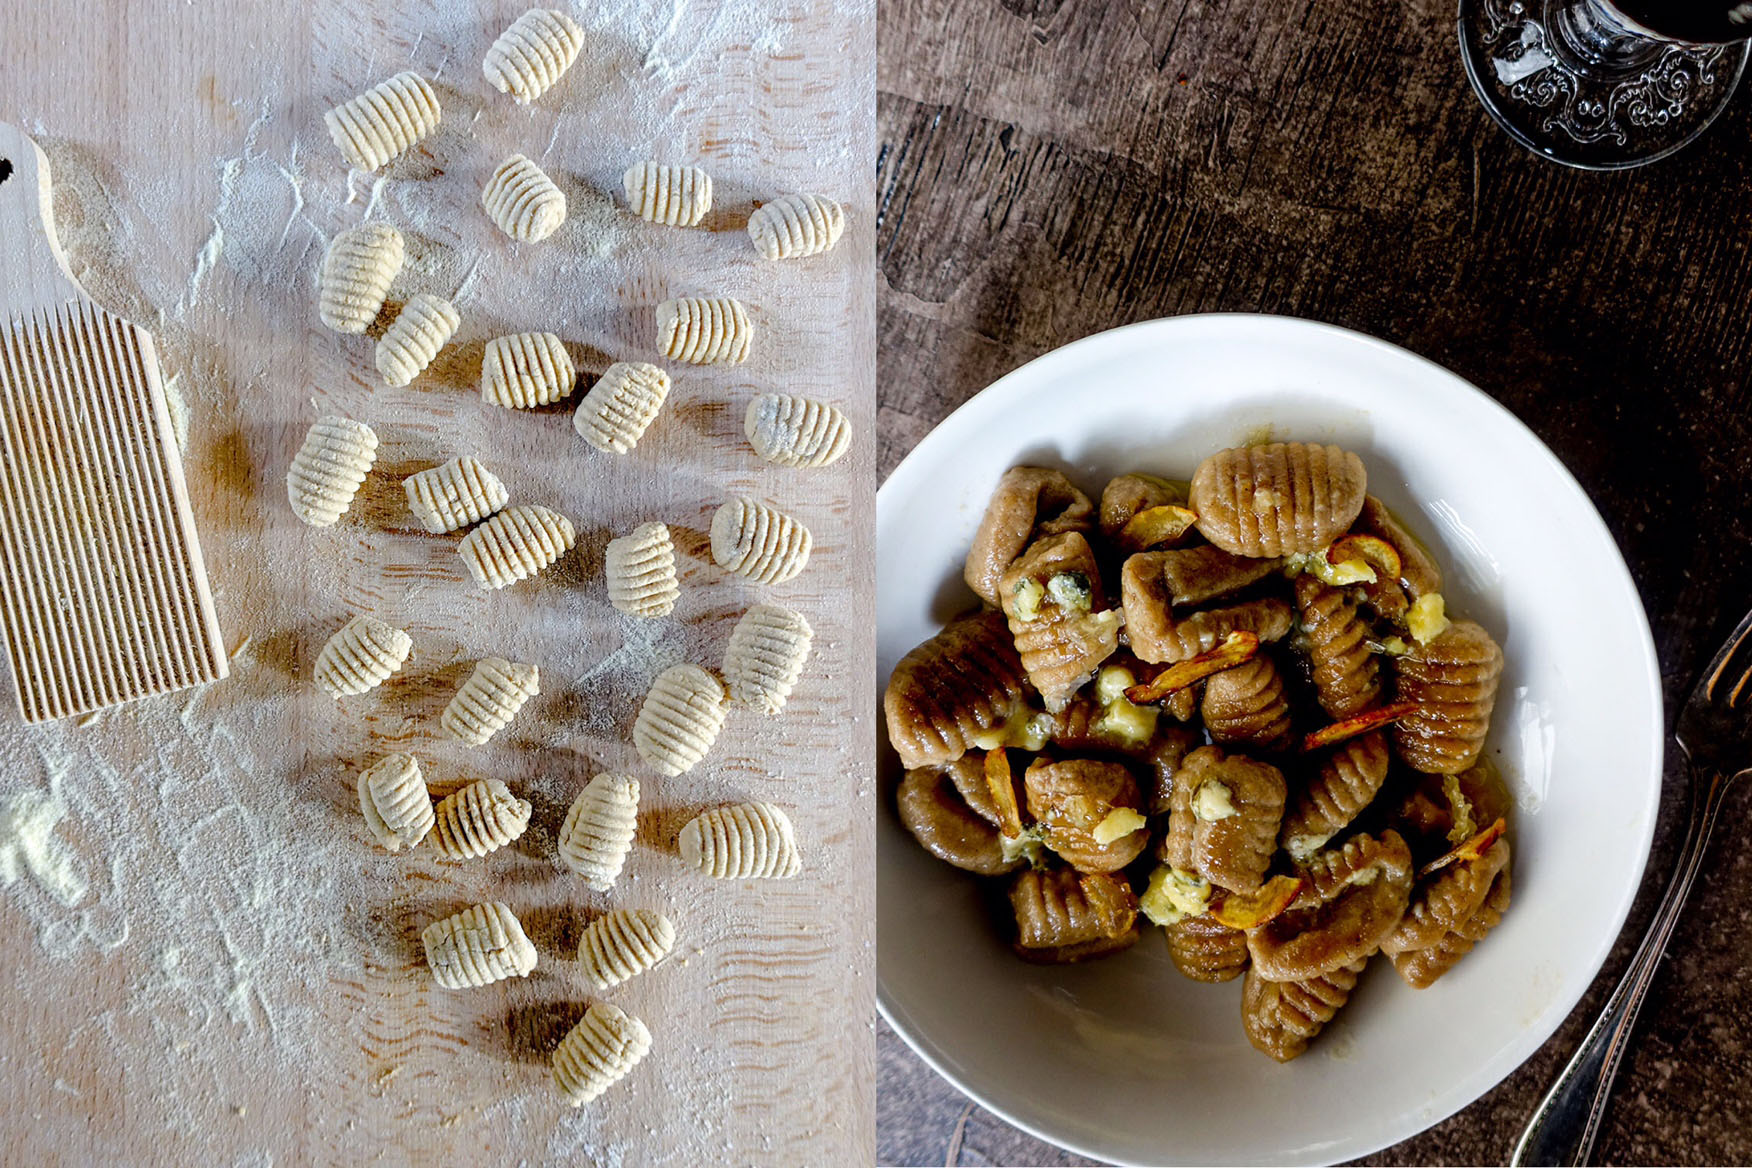 gnocchi with chestnuts-castagne-italy on my mind